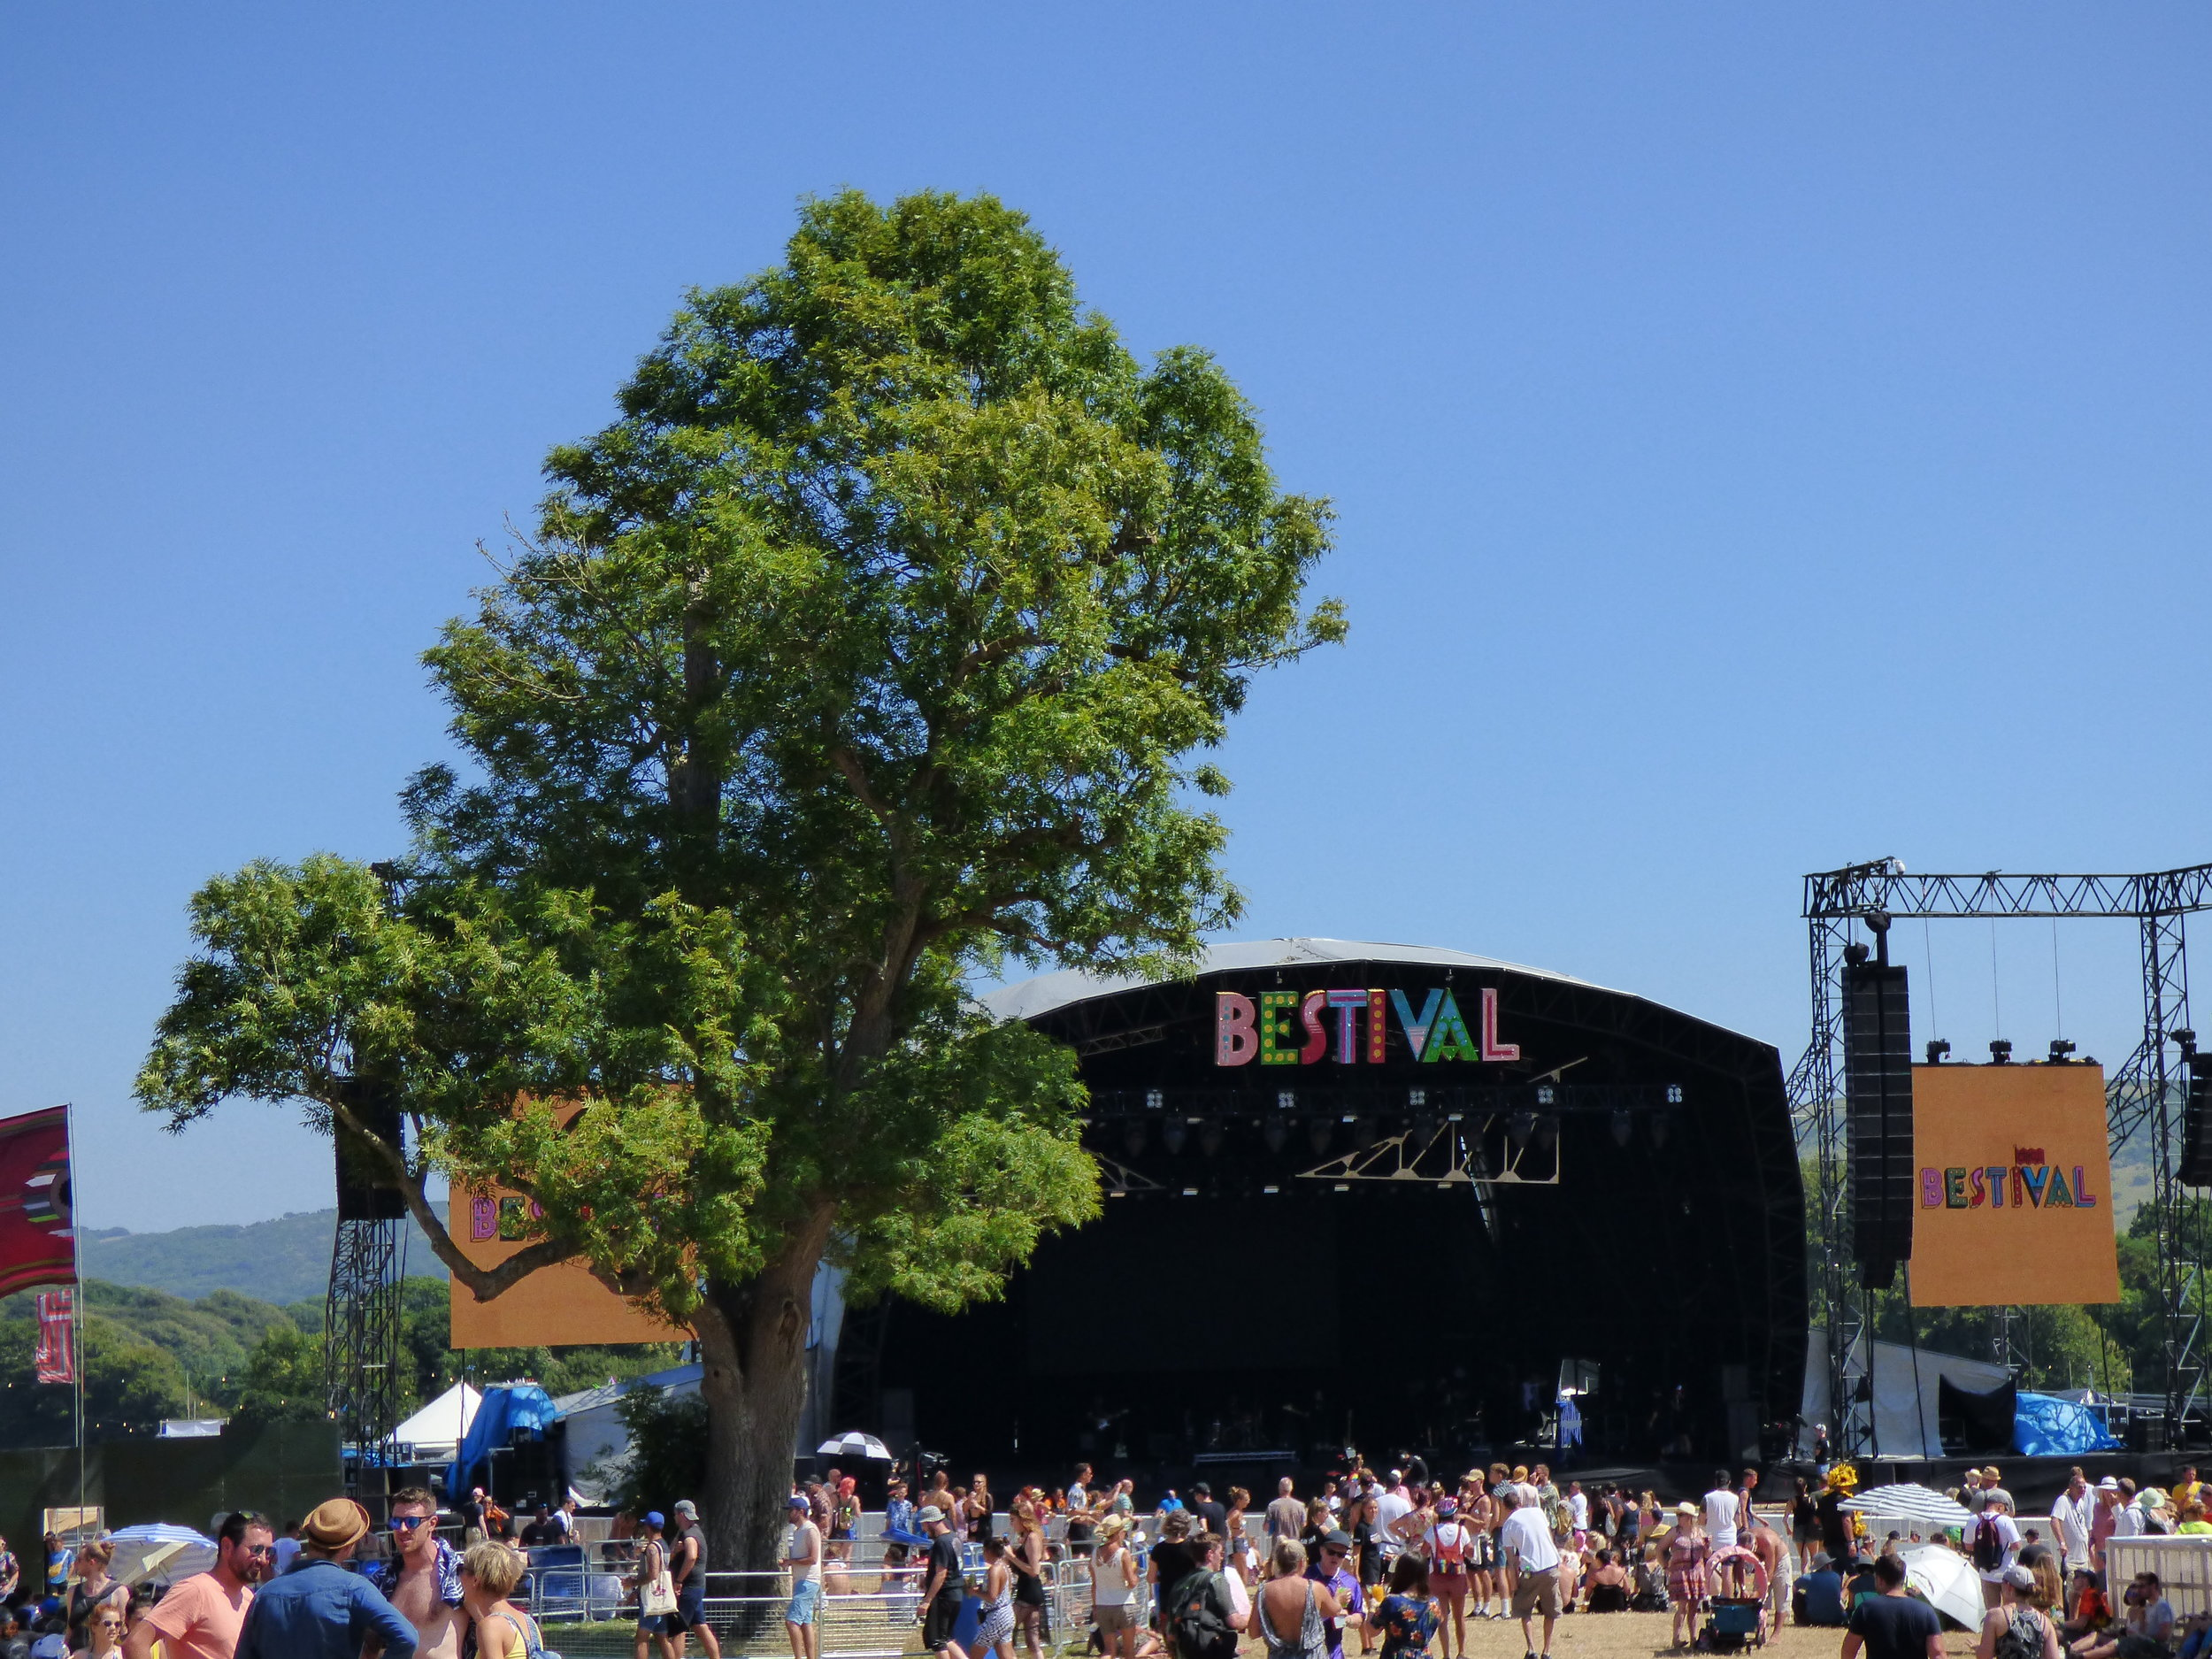 Bestival 2018:Friday Report - Friday marked the first full day of Bestival, the sun was blazing down as thousands of revellers flocked down to the scenic surroundings of Lulworth Estate for the festival.